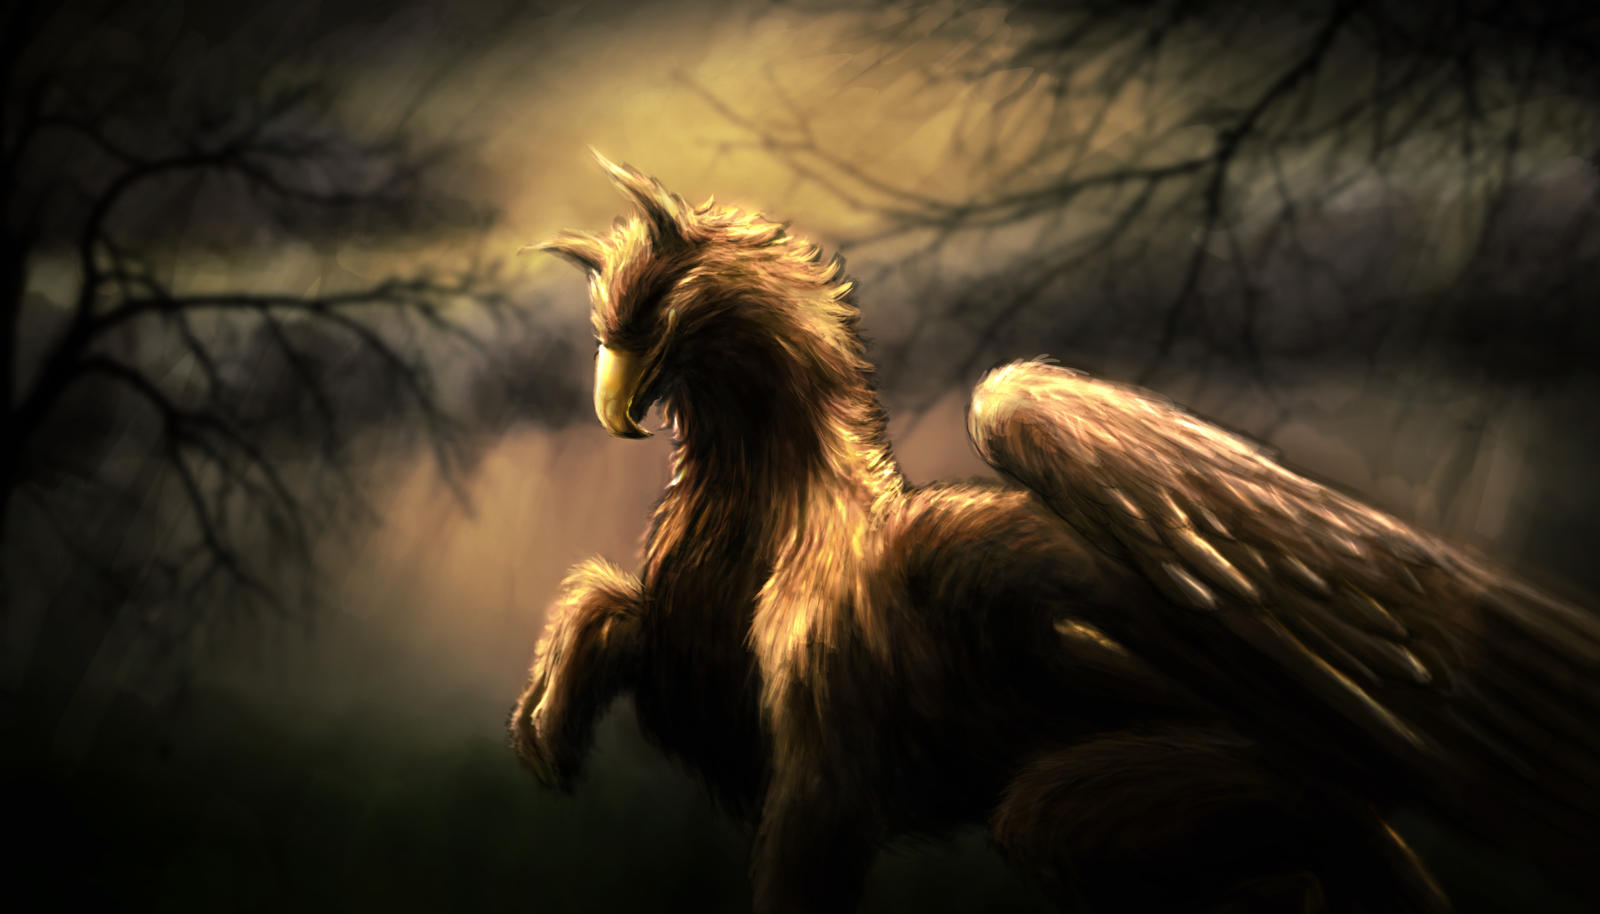 http://fc08.deviantart.net/fs71/i/2011/252/c/b/gryphon_speed_painting_by_pittyputty-d49au4l.jpg